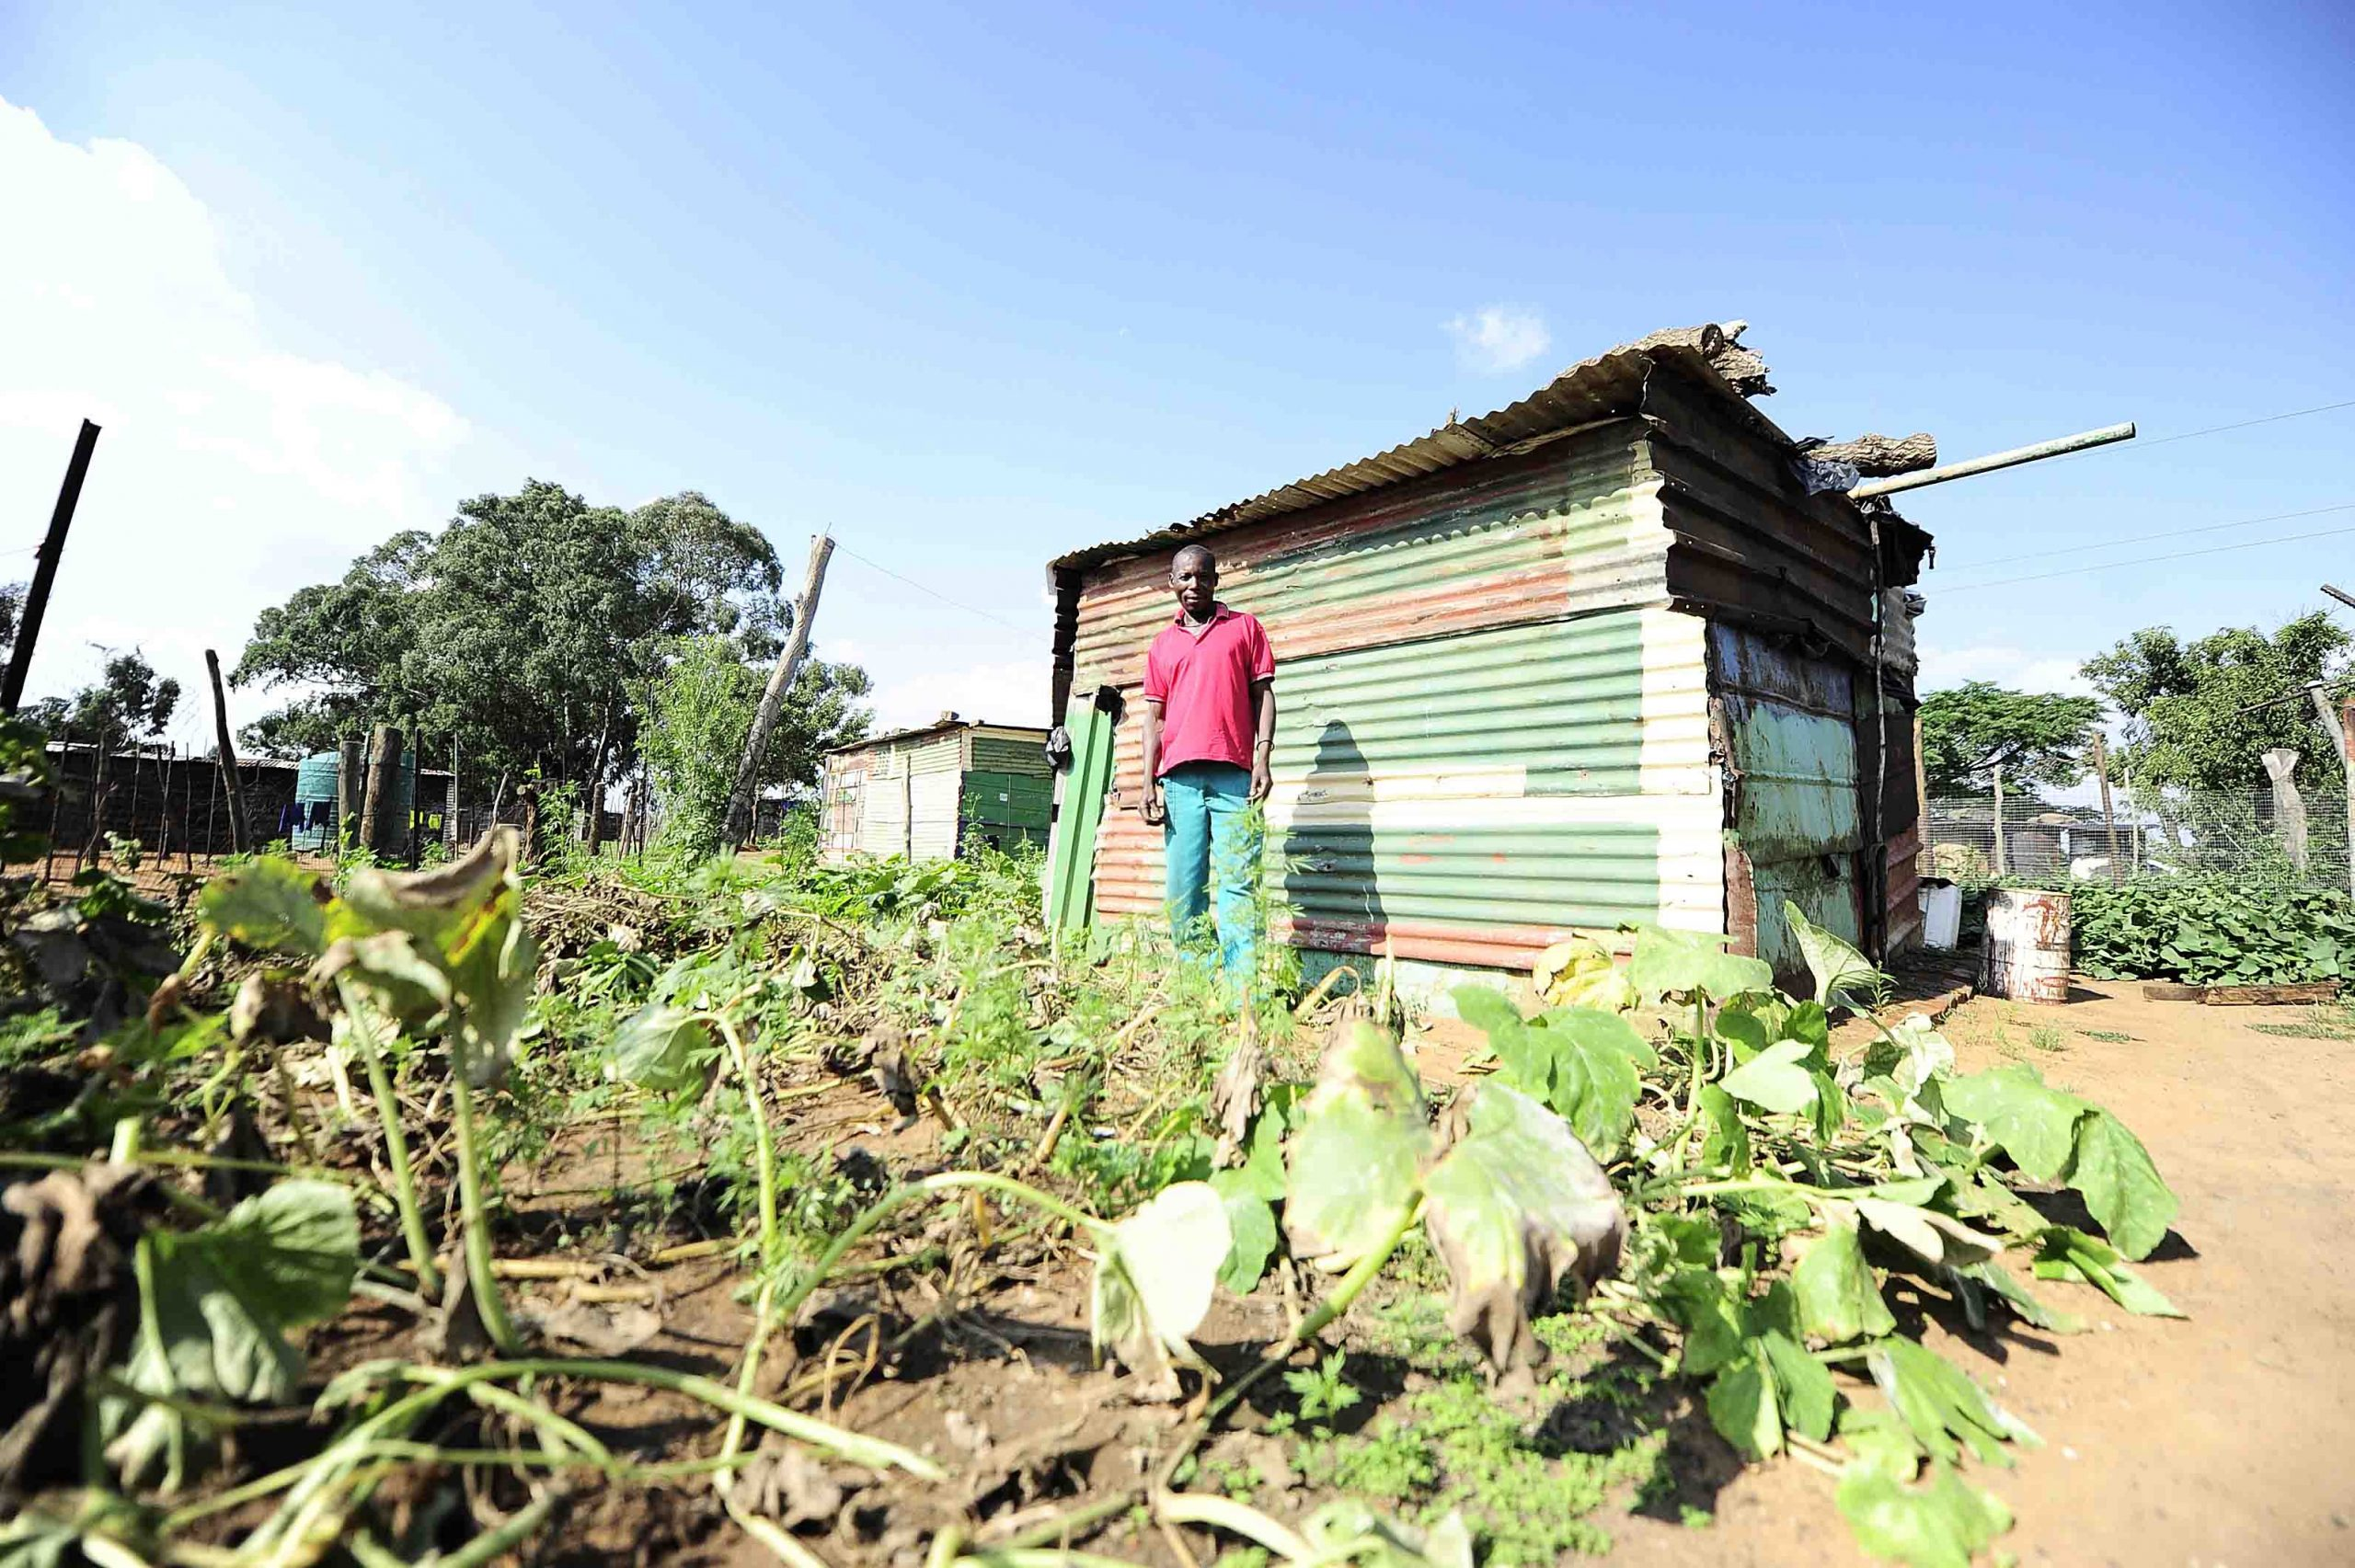 18 March 2016: A resident in a settlement in Mpumalanga where crops struggle to grow because of severe air pollution. (Photograph by Thulani Mbhele/ Sowetan/ Gallo Images)